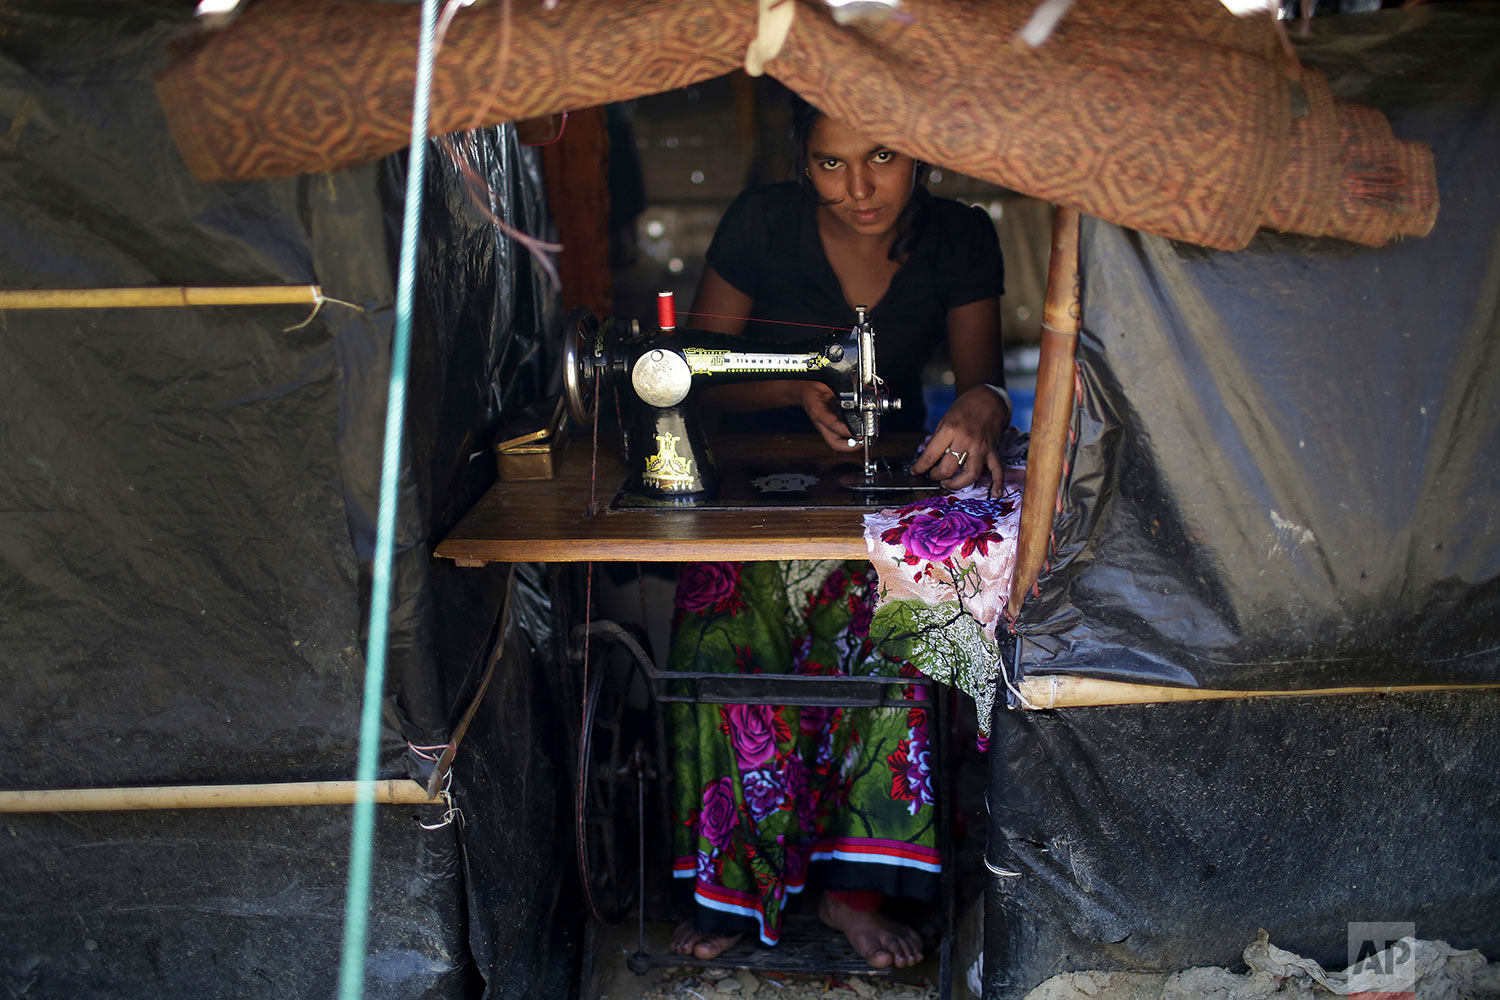 A Rohingya Muslim woman works on her sewing machine inside her tent at Kutupalong refugee camp on Tuesday, Nov. 28, 2017, in Bangladesh. Since late August, more than 620,000 Rohingya have fled Myanmar's Rakhine state into neighboring Bangladesh, where they are living in squalid refugee camps. (AP Photo/Wong Maye-E)